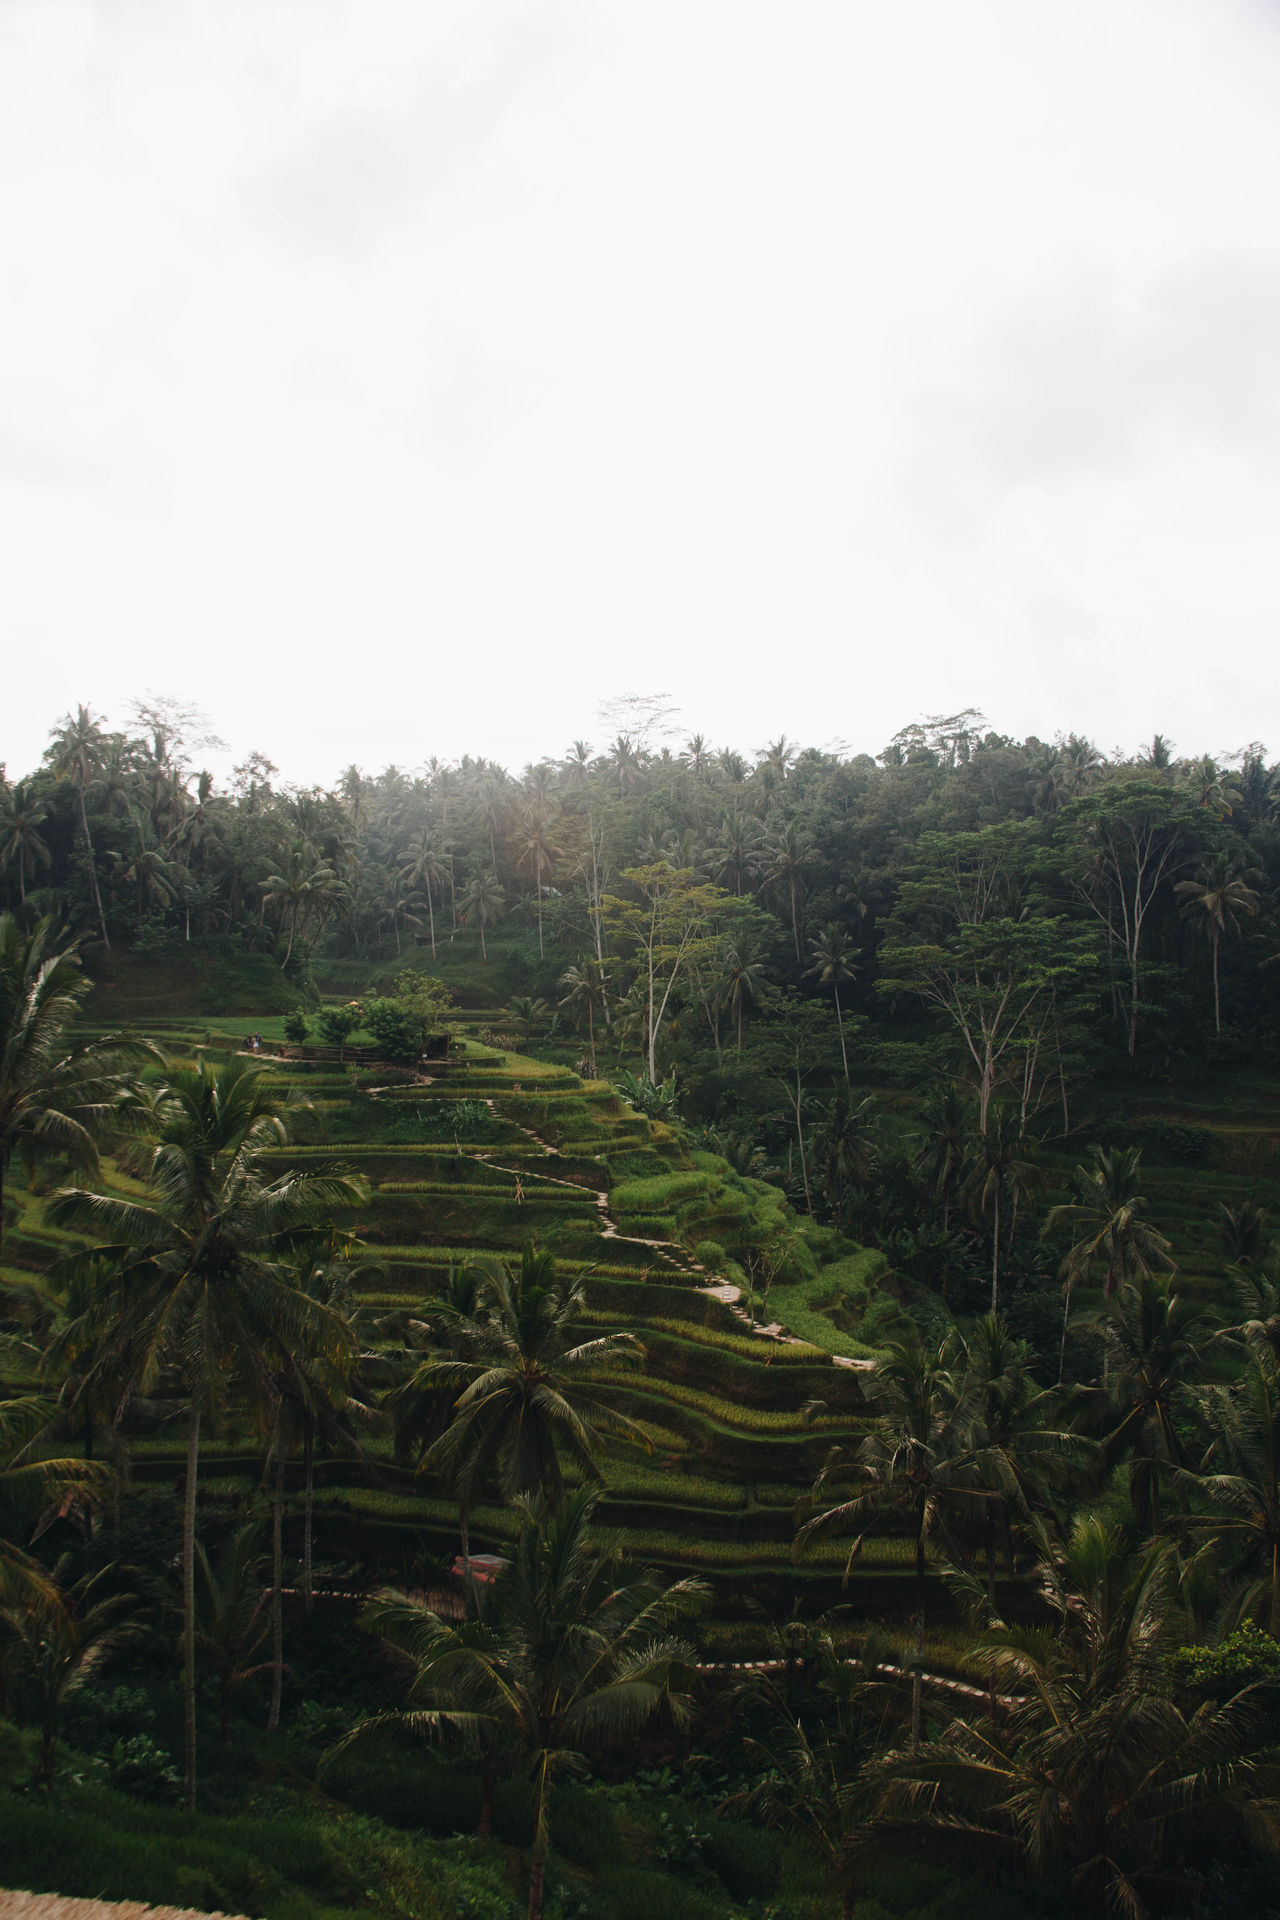 Agriculture Beauty In Nature Day Farm Field Green Color Growth Landscape Nature No People Outdoors Rice Paddy Rural Scene Scenics Sky Terraced Field Tranquil Scene Tranquility Tree